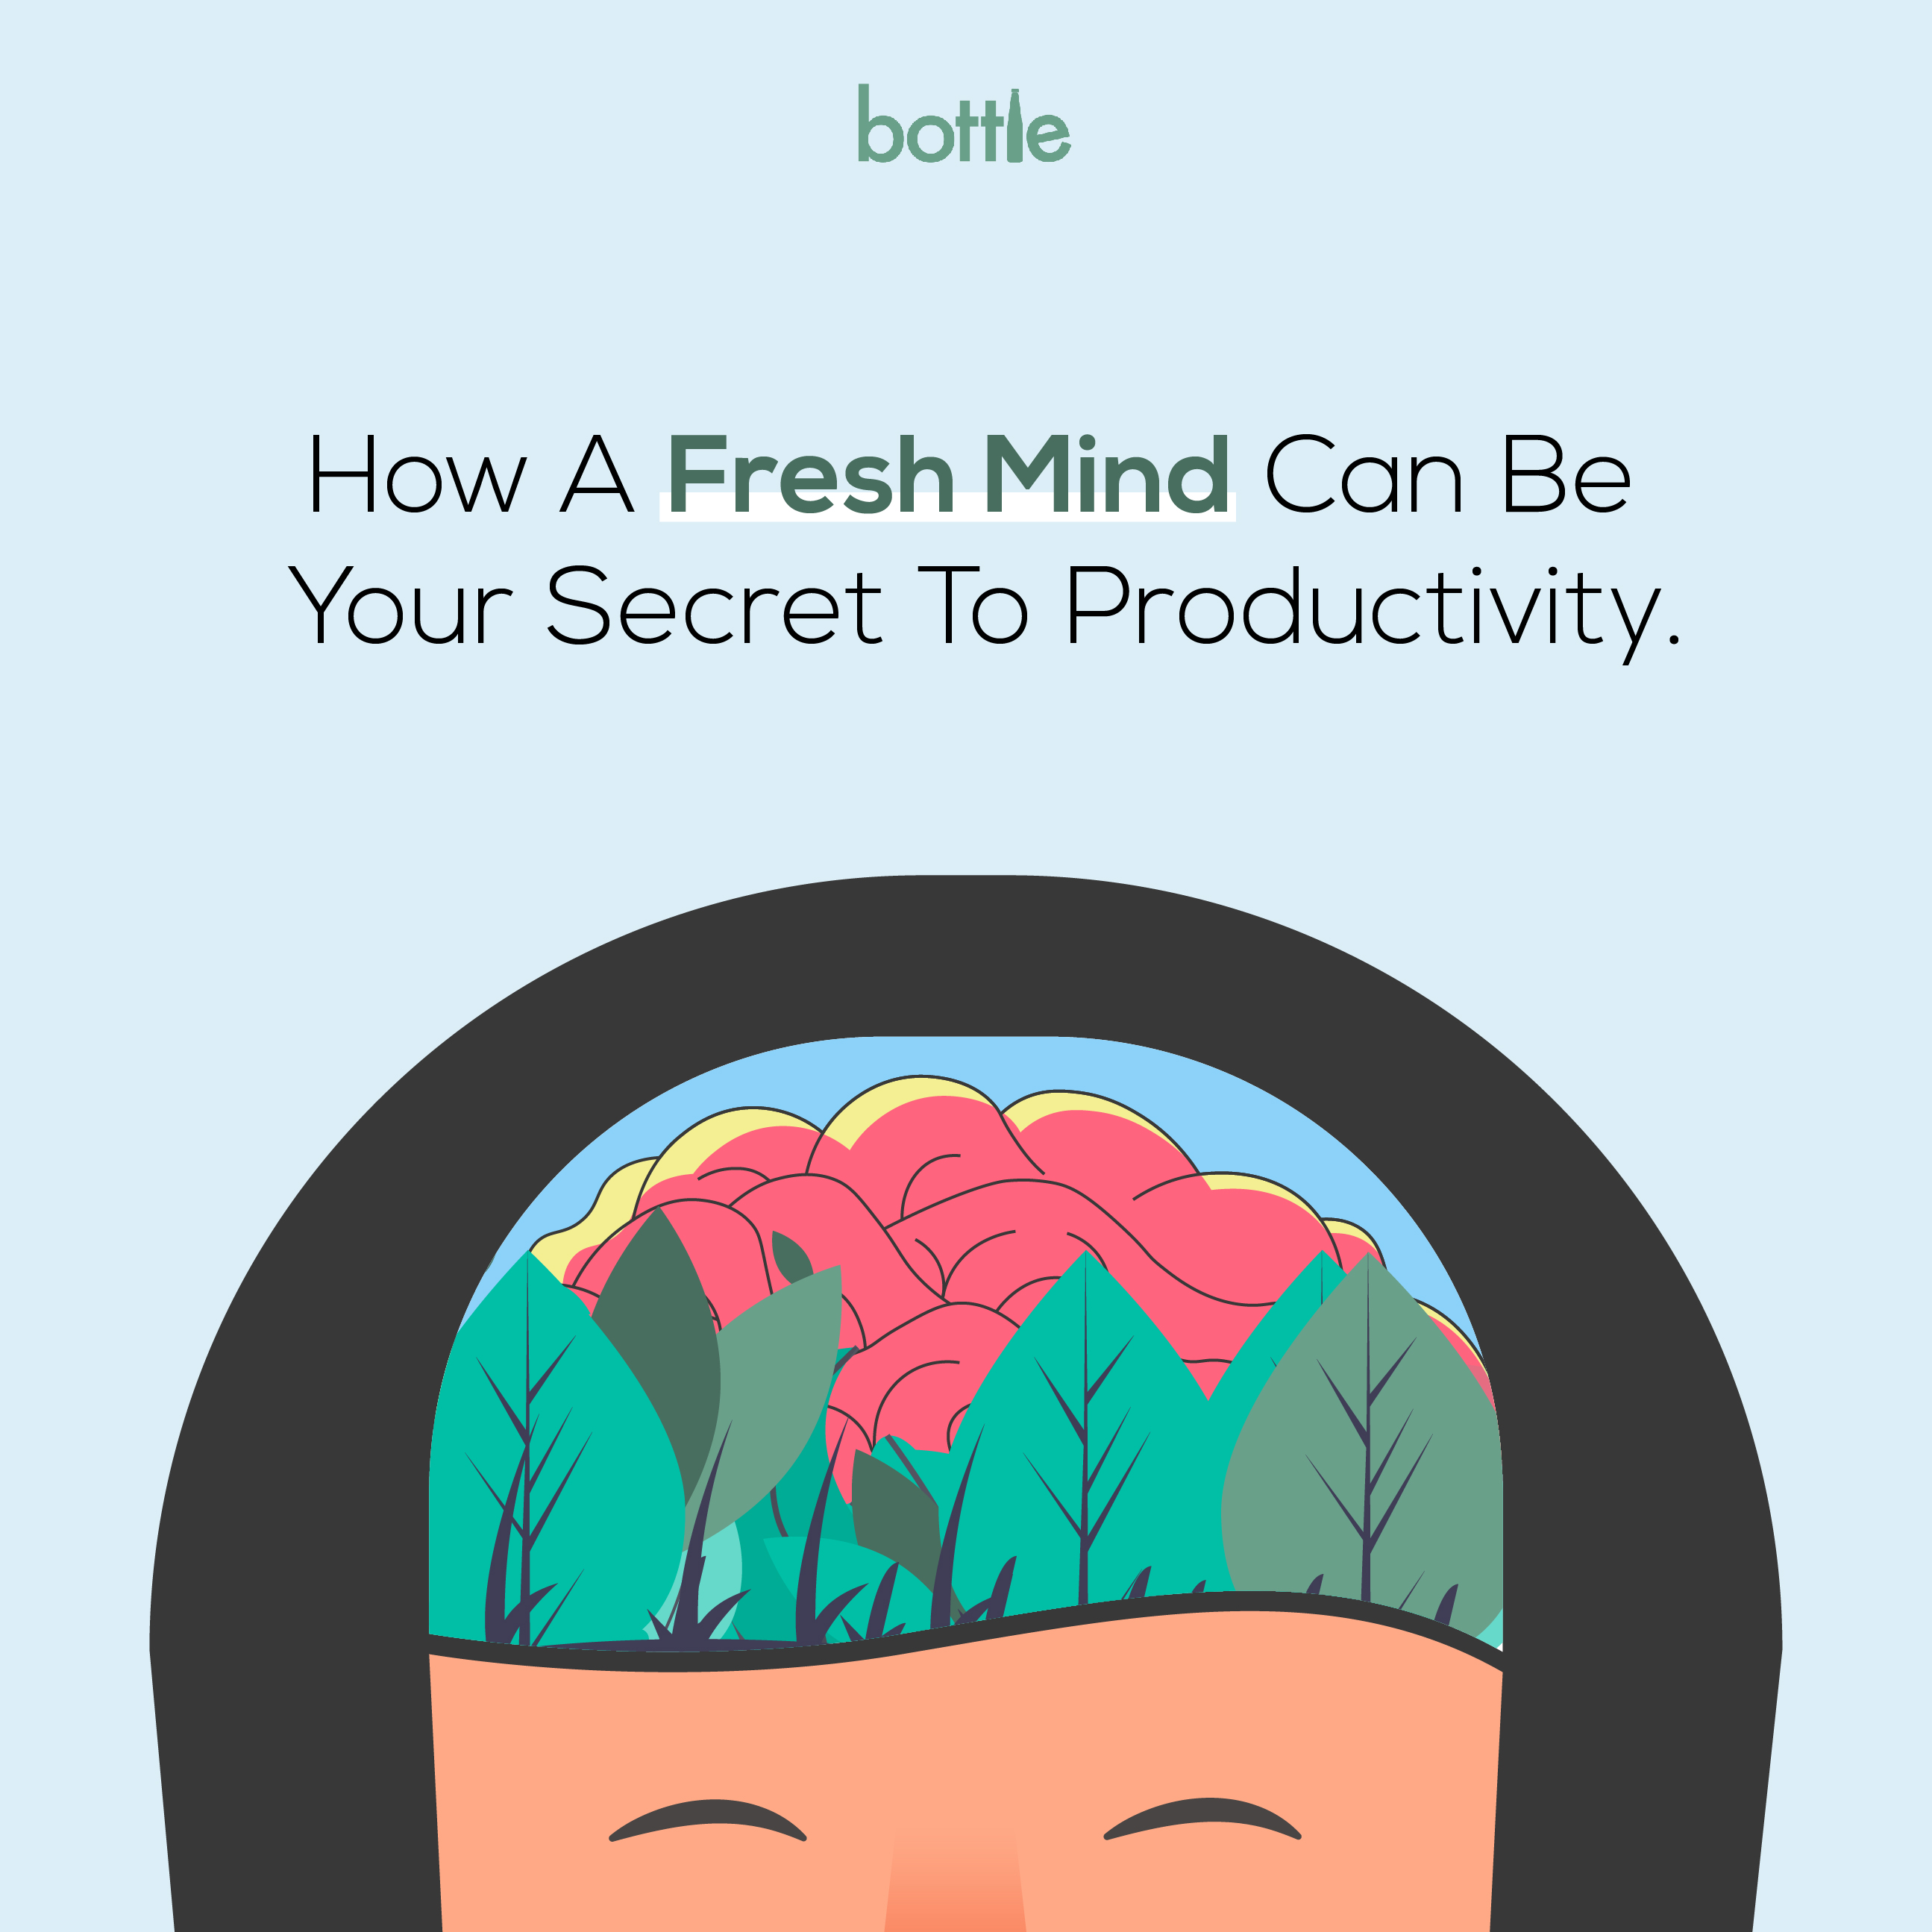 How A Fresh Mind Can Be Your Secret To Productivity